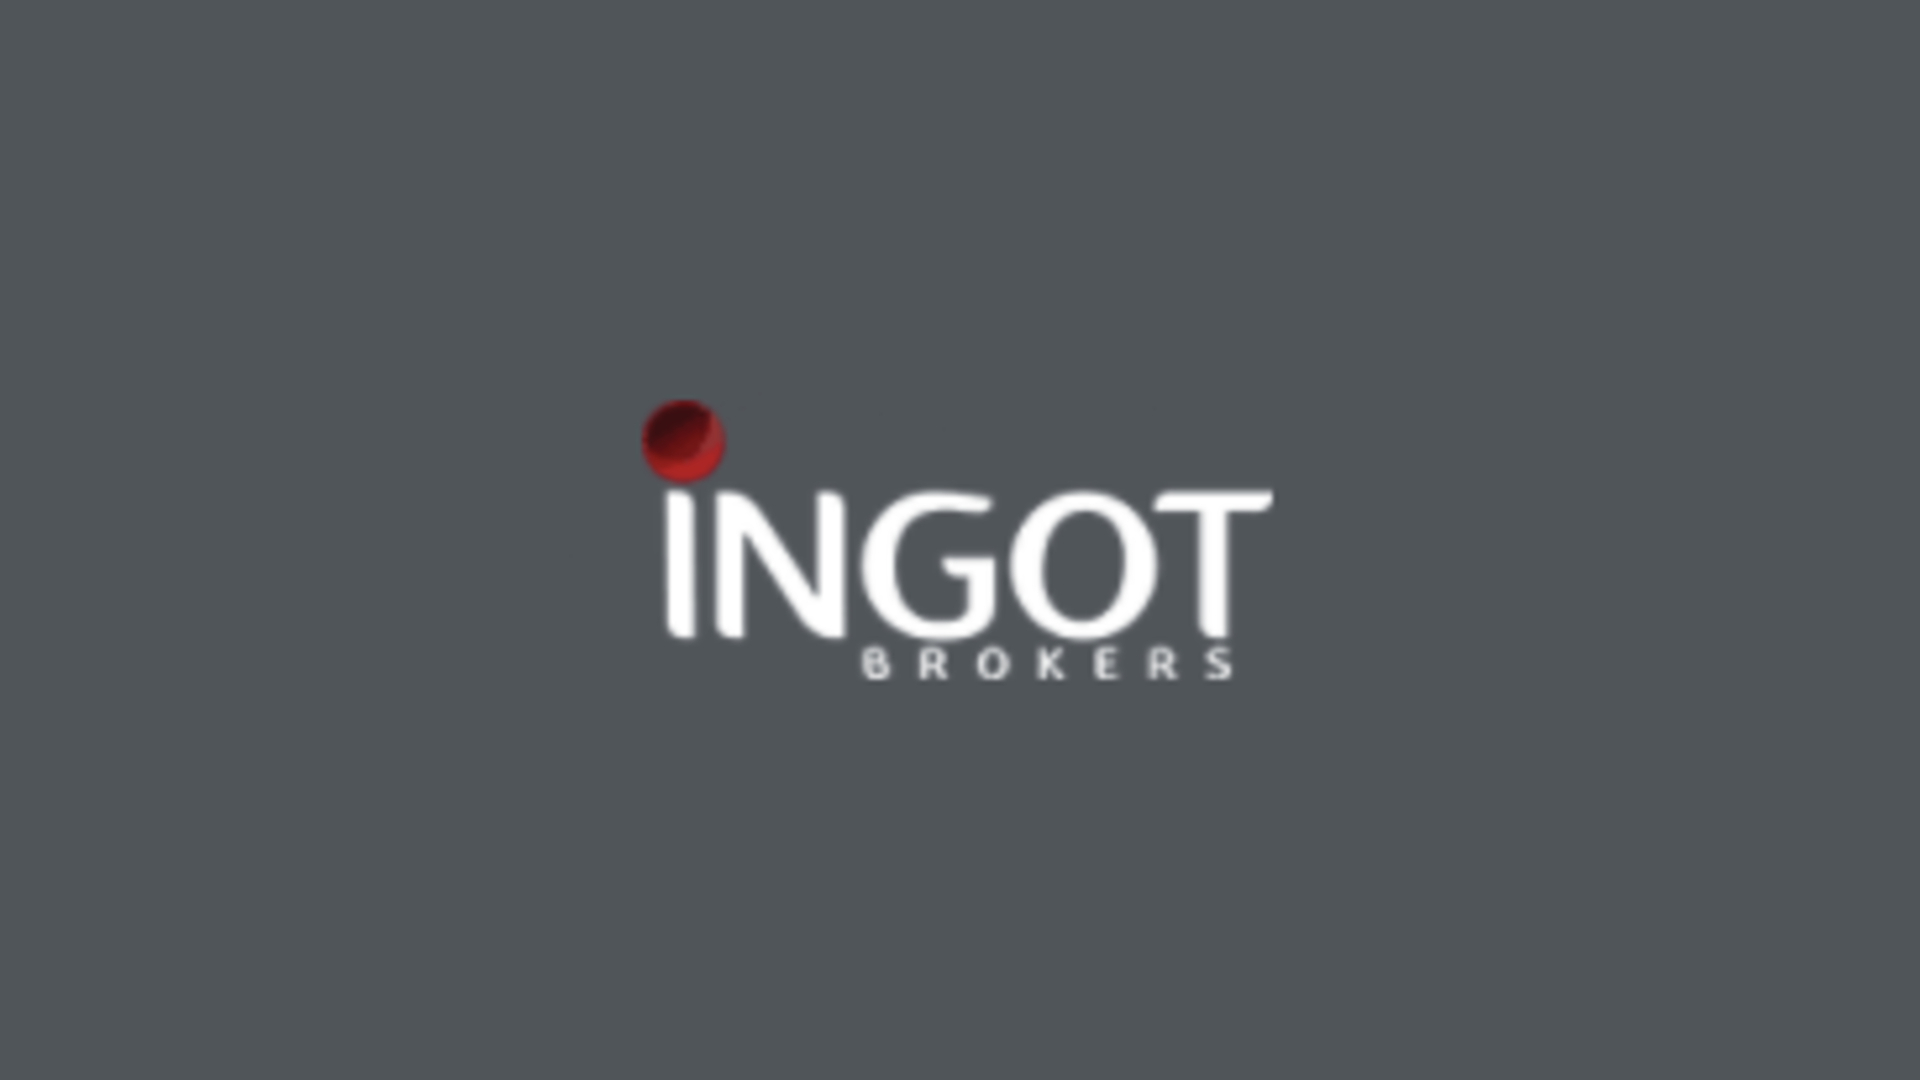 Ingot Brokers review – Can they offer anything good?